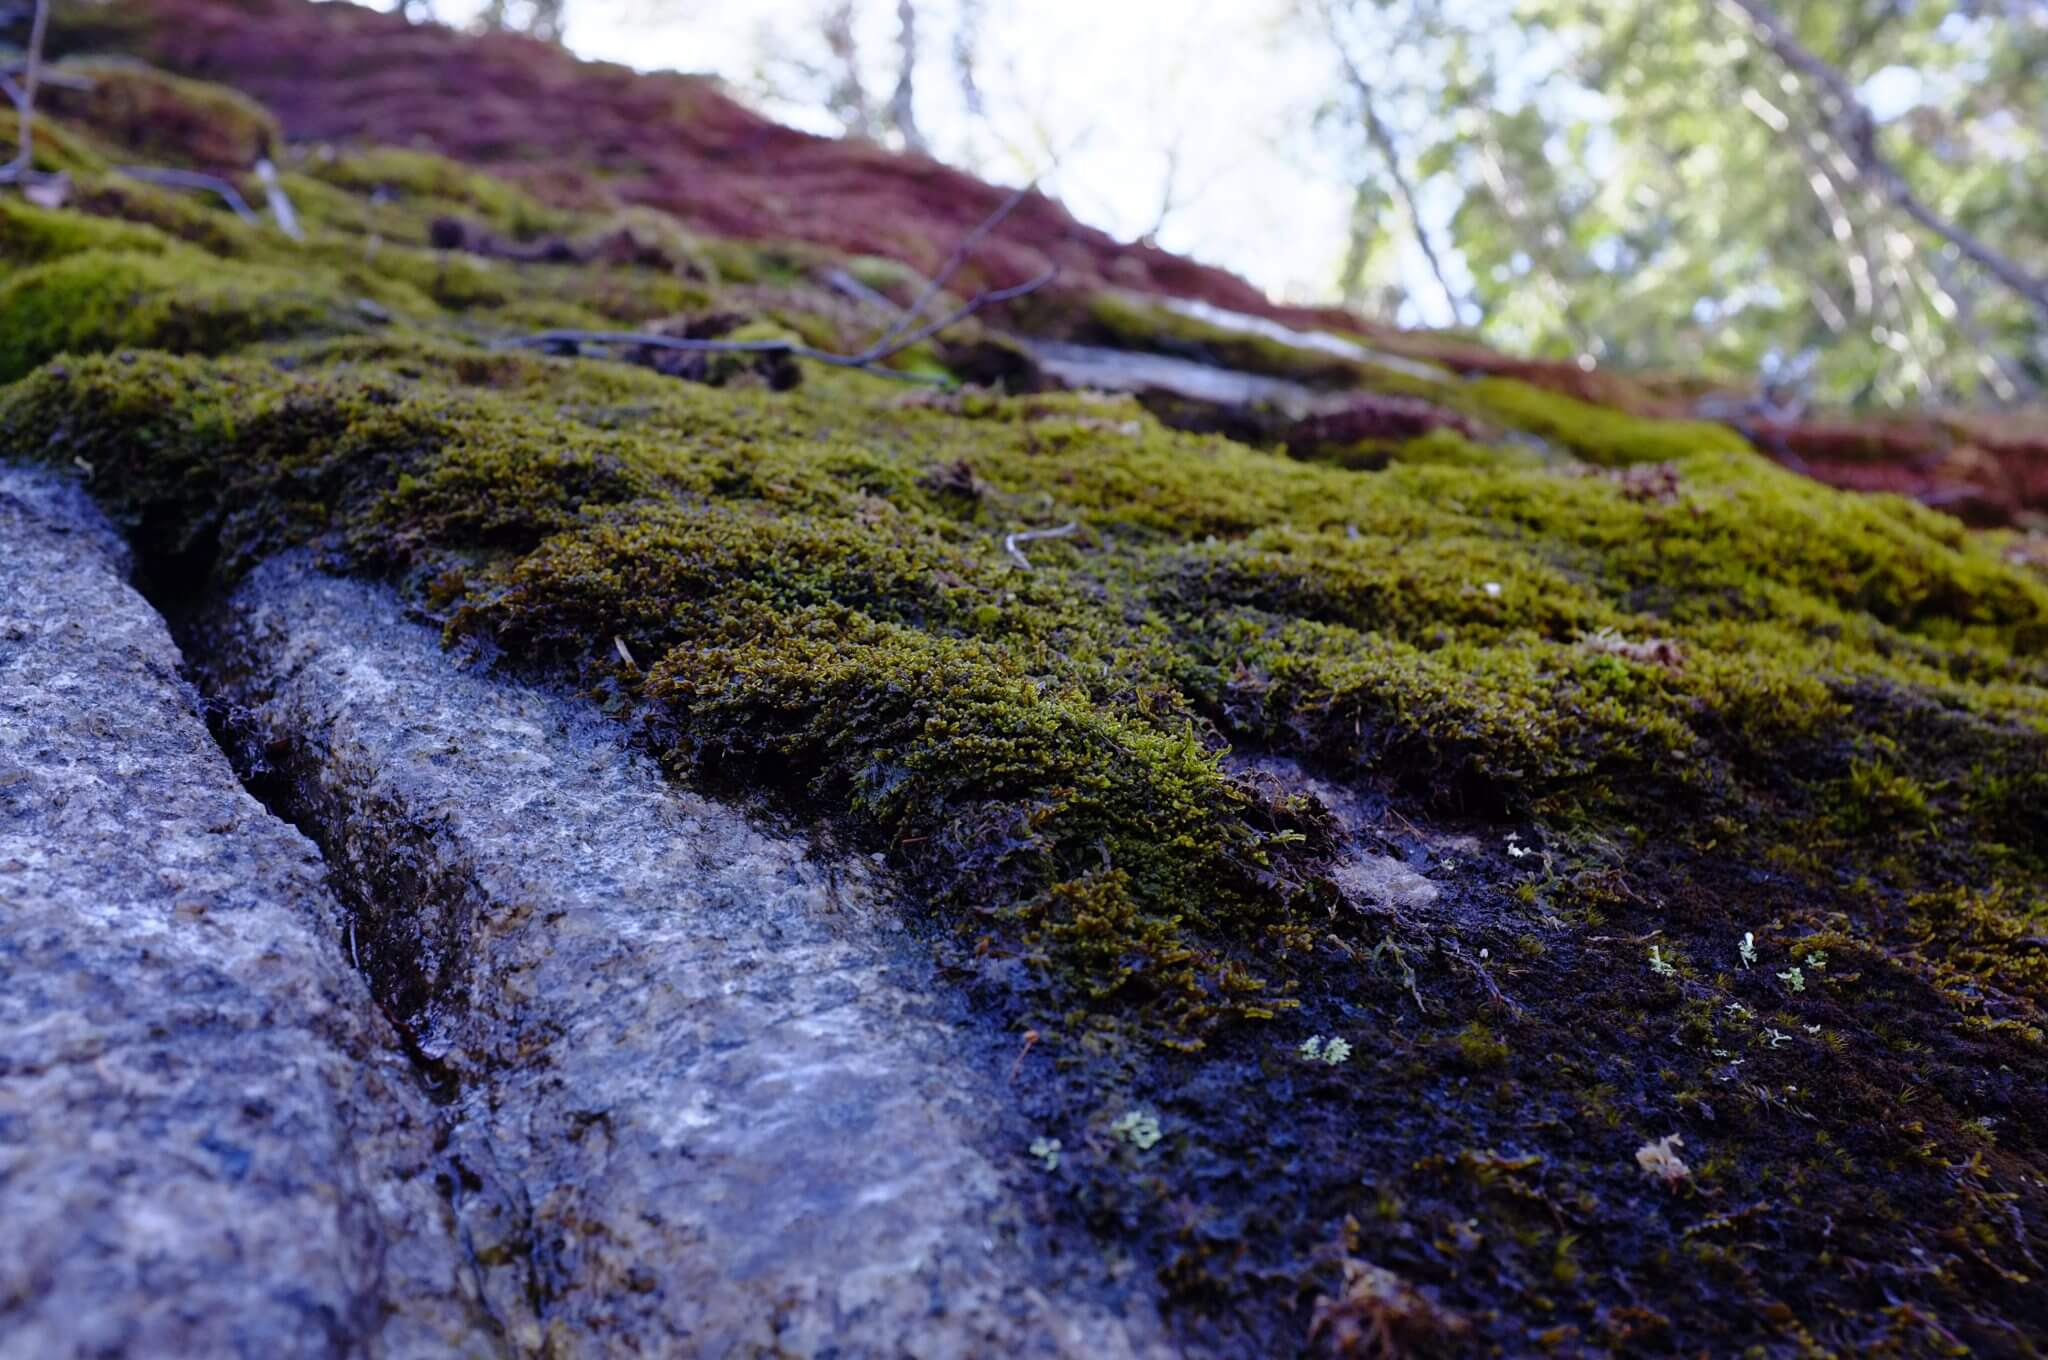 Close-up of mossy cliff face